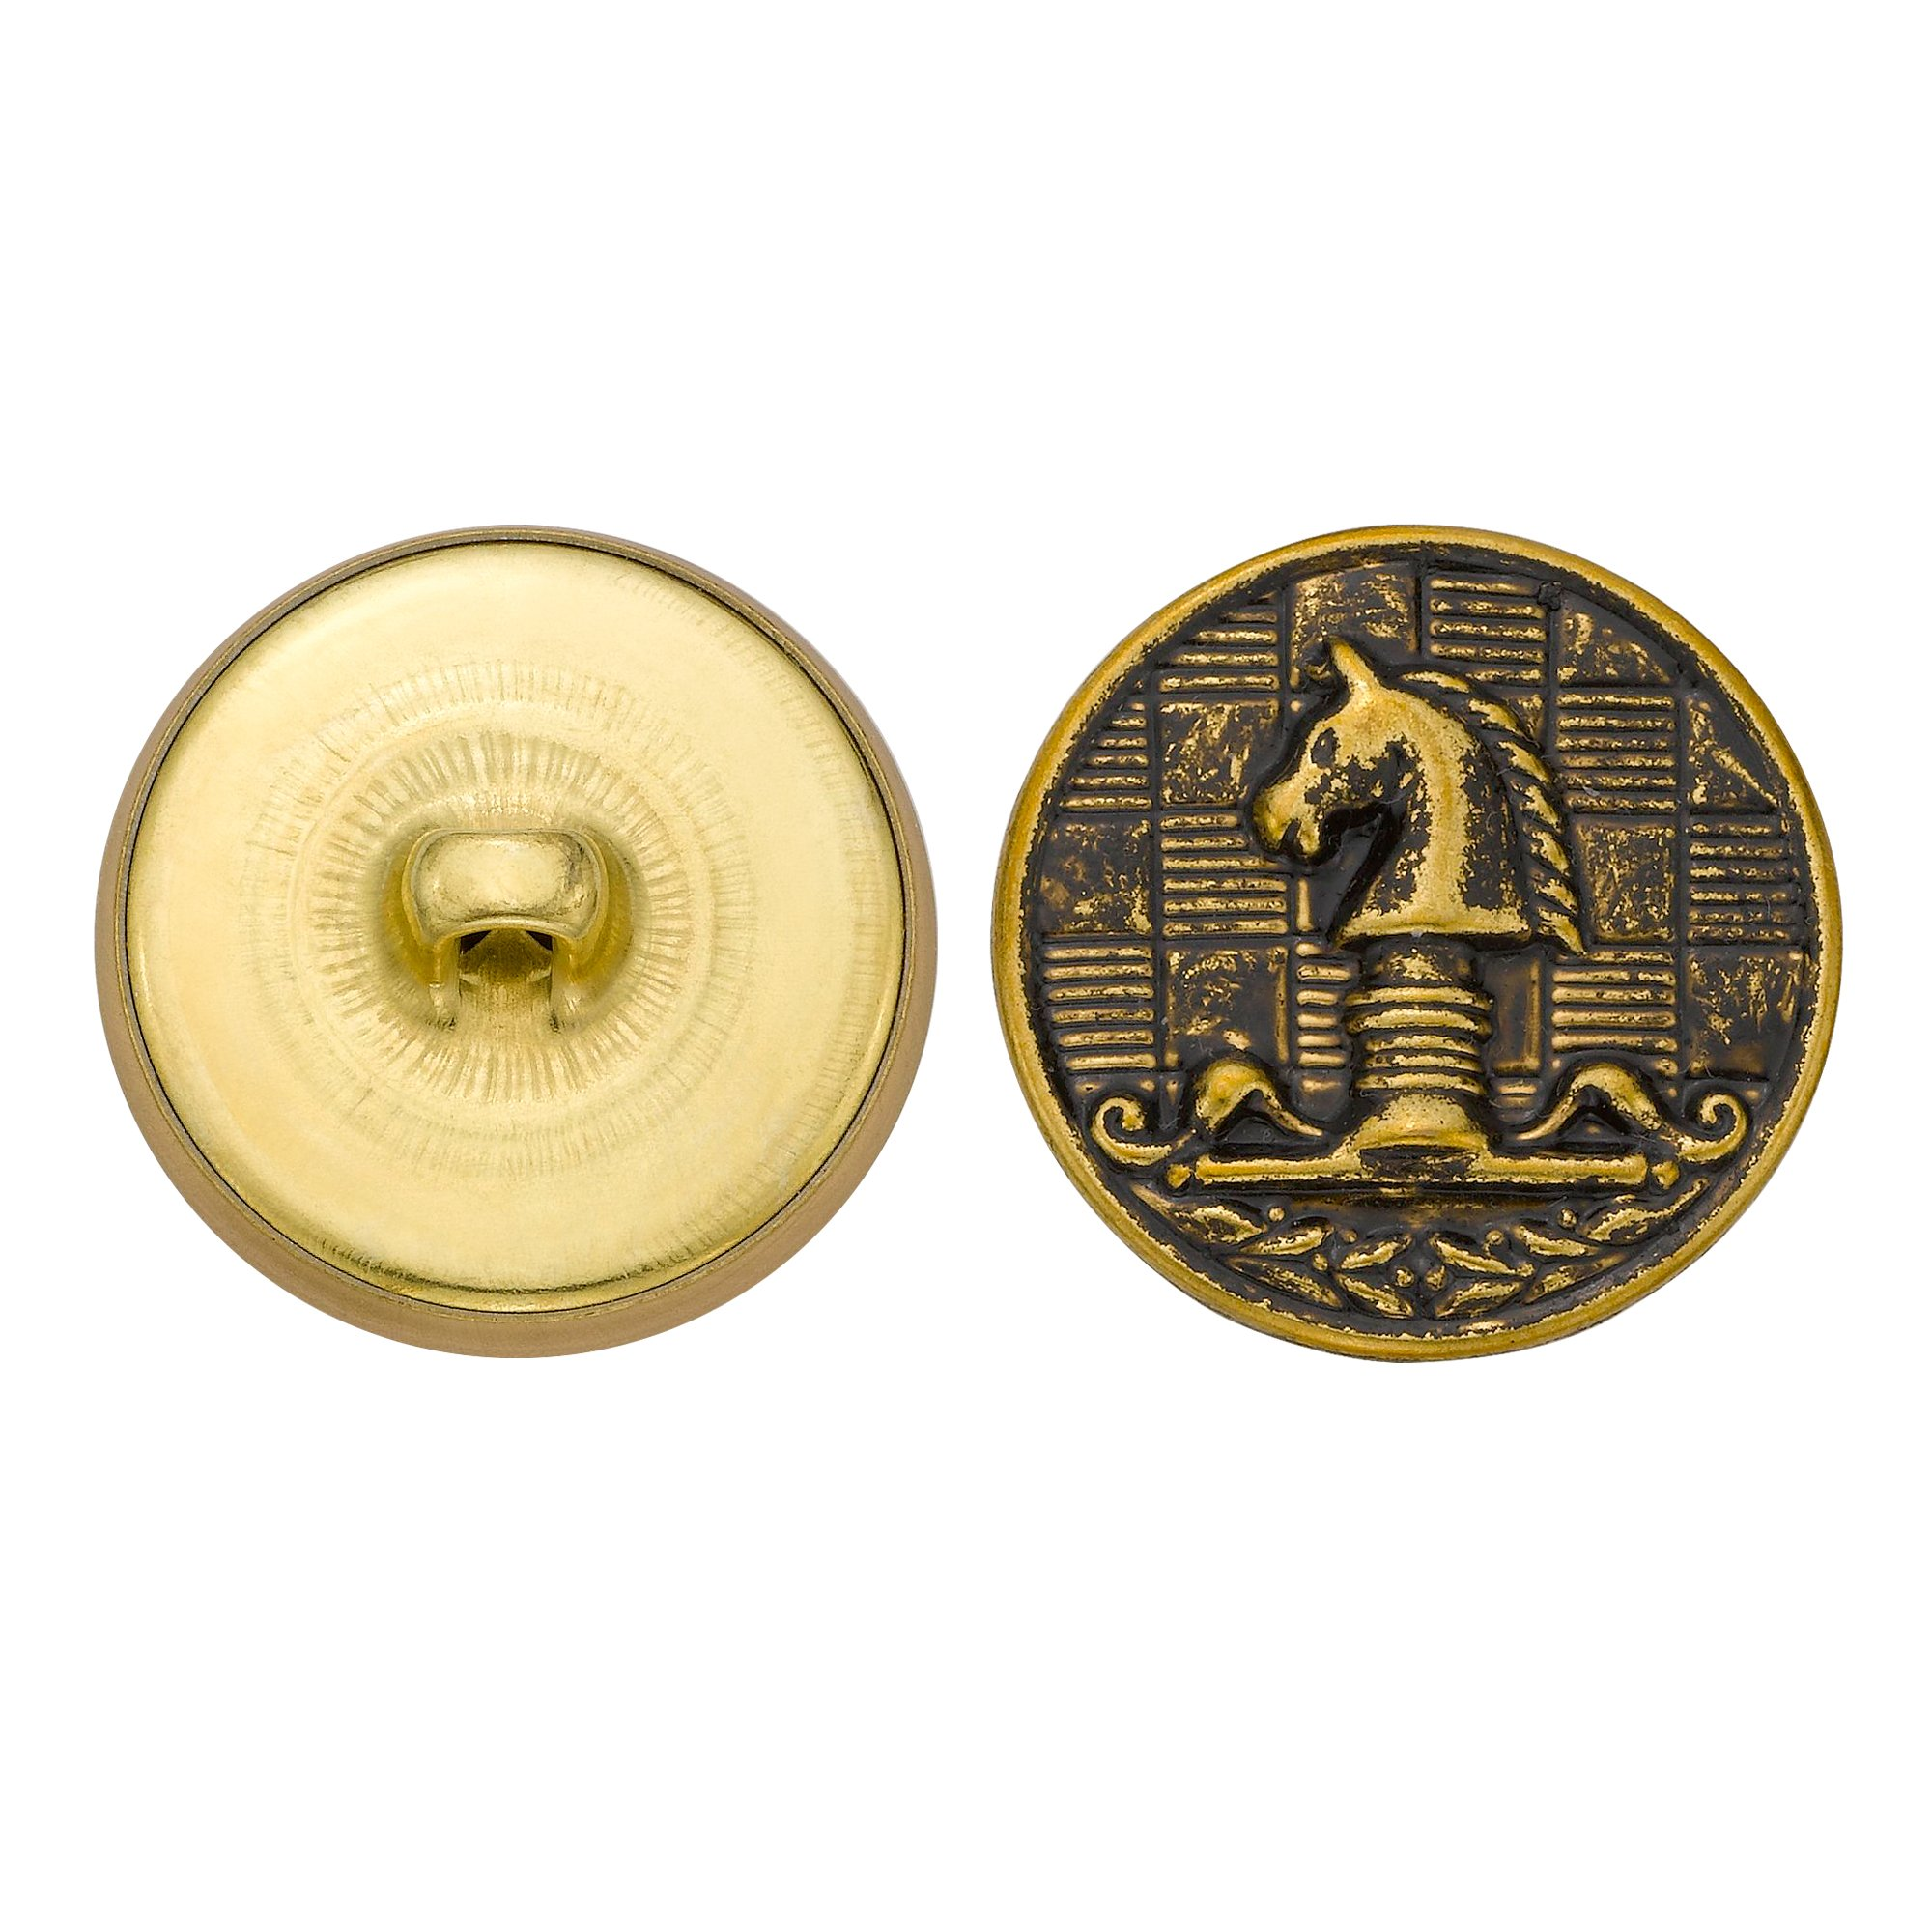 C&C Metal Products 5132 Horse Chess Piece Metal Button, Size 36 Ligne, Antique Gold, 36-Pack